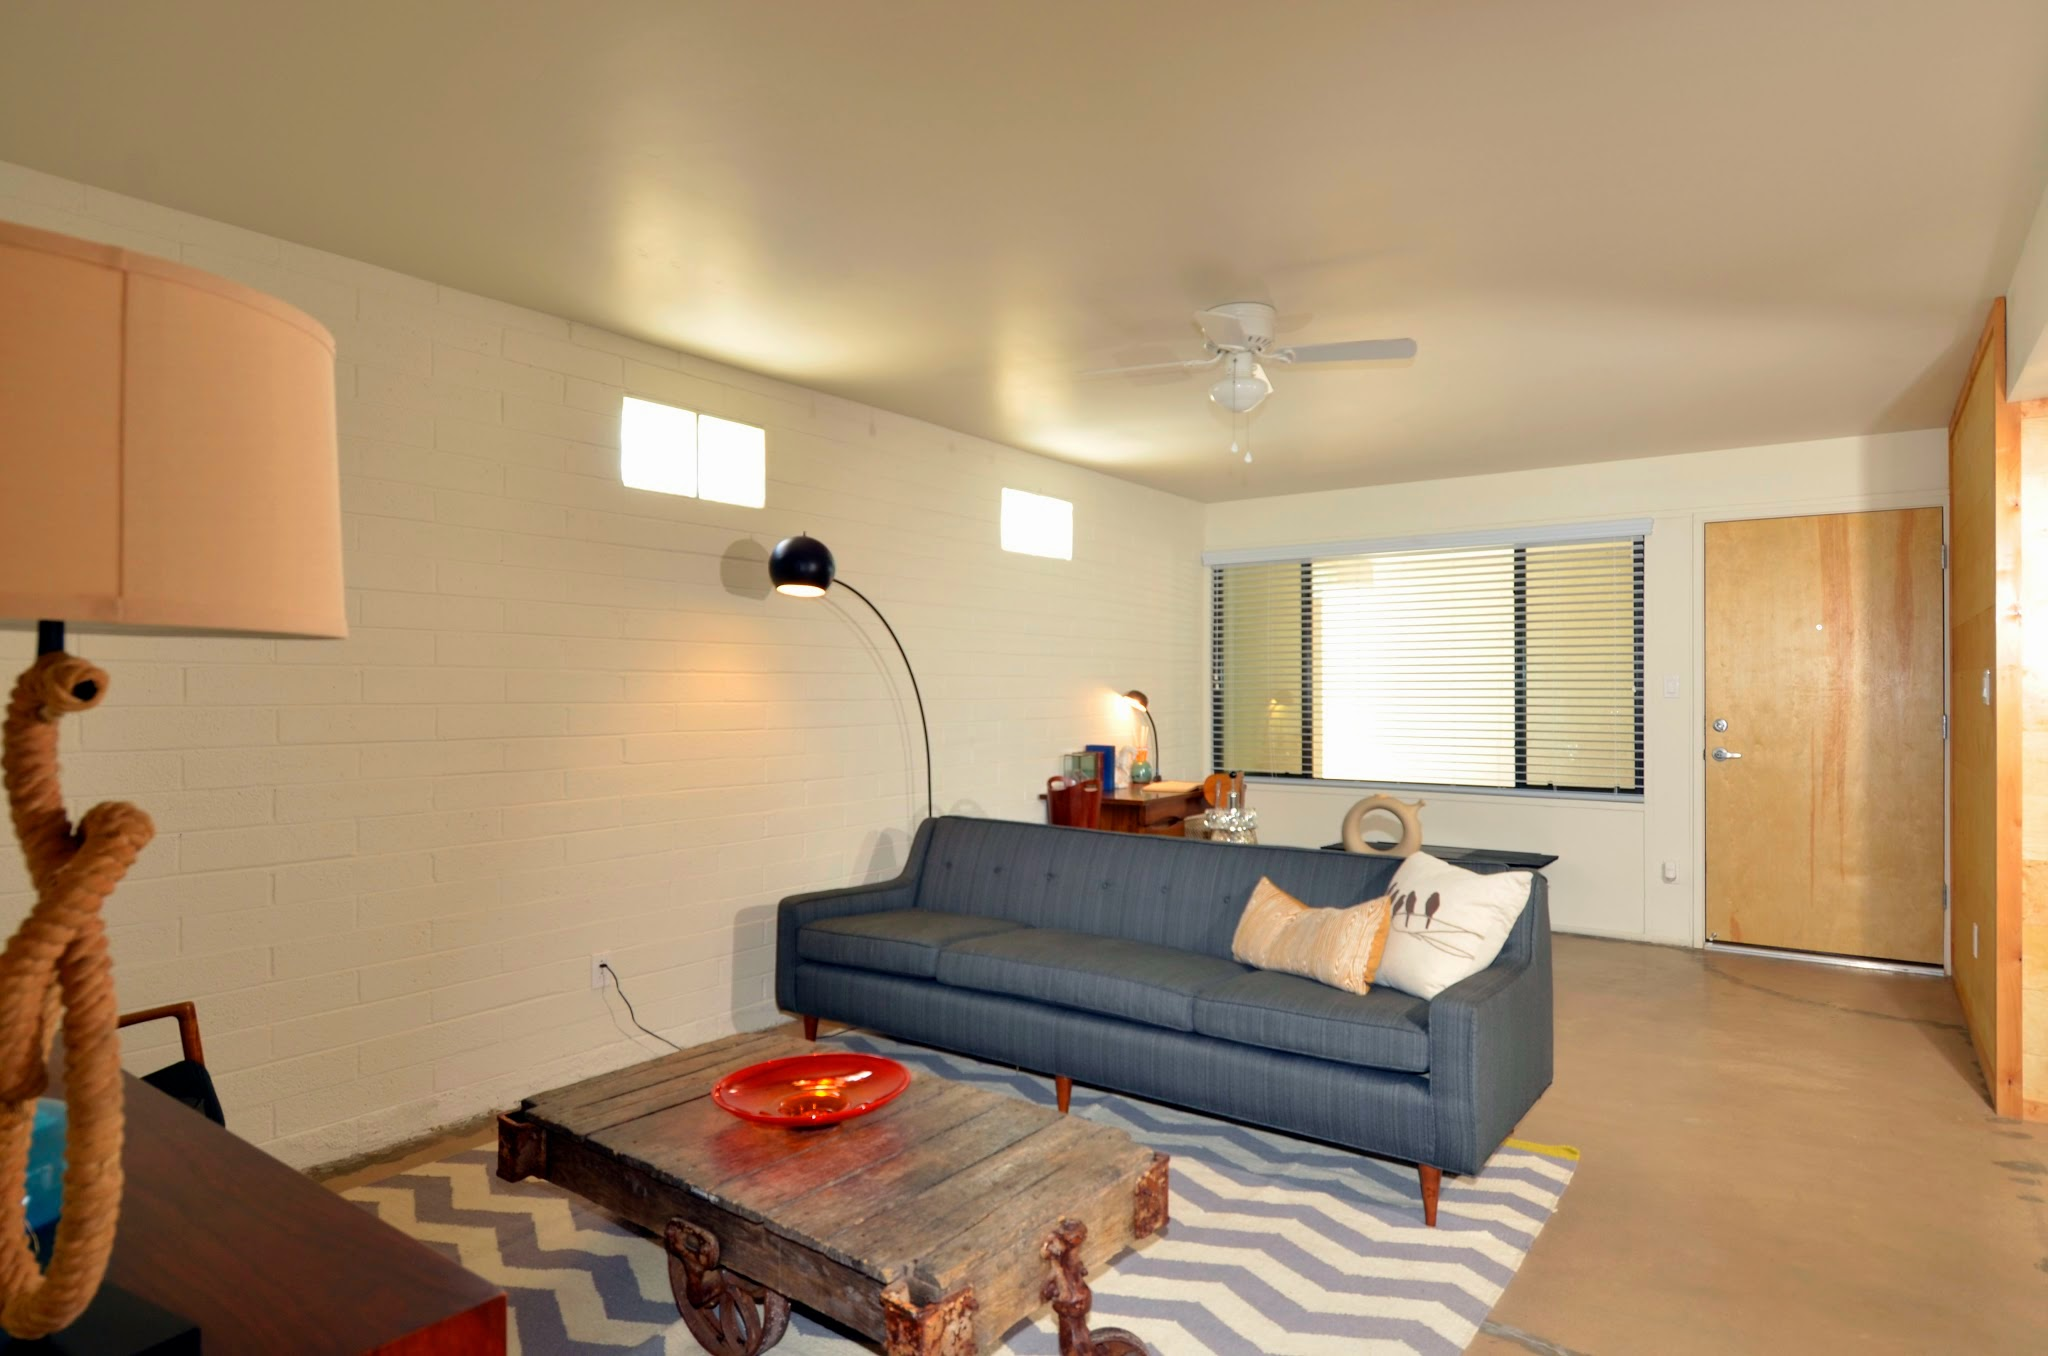 Open Floor Plans at The Winfield of Scottsdale Apartments in Scottsdale, Arizona